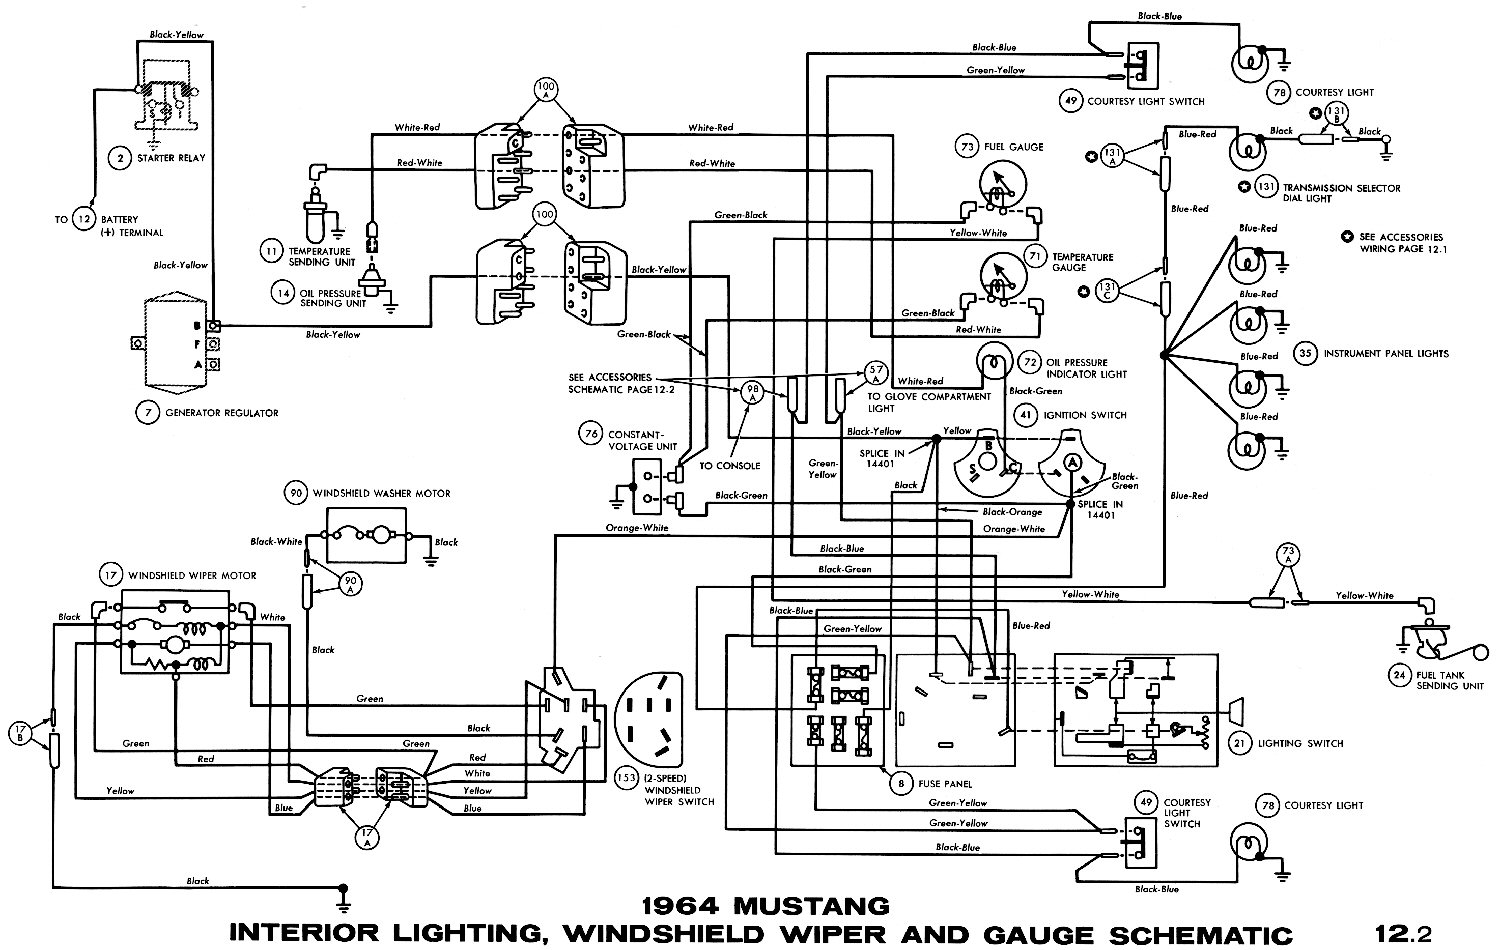 1976 corvette dash wiring diagram star delta motor connection 1964 mustang diagrams - average joe restoration